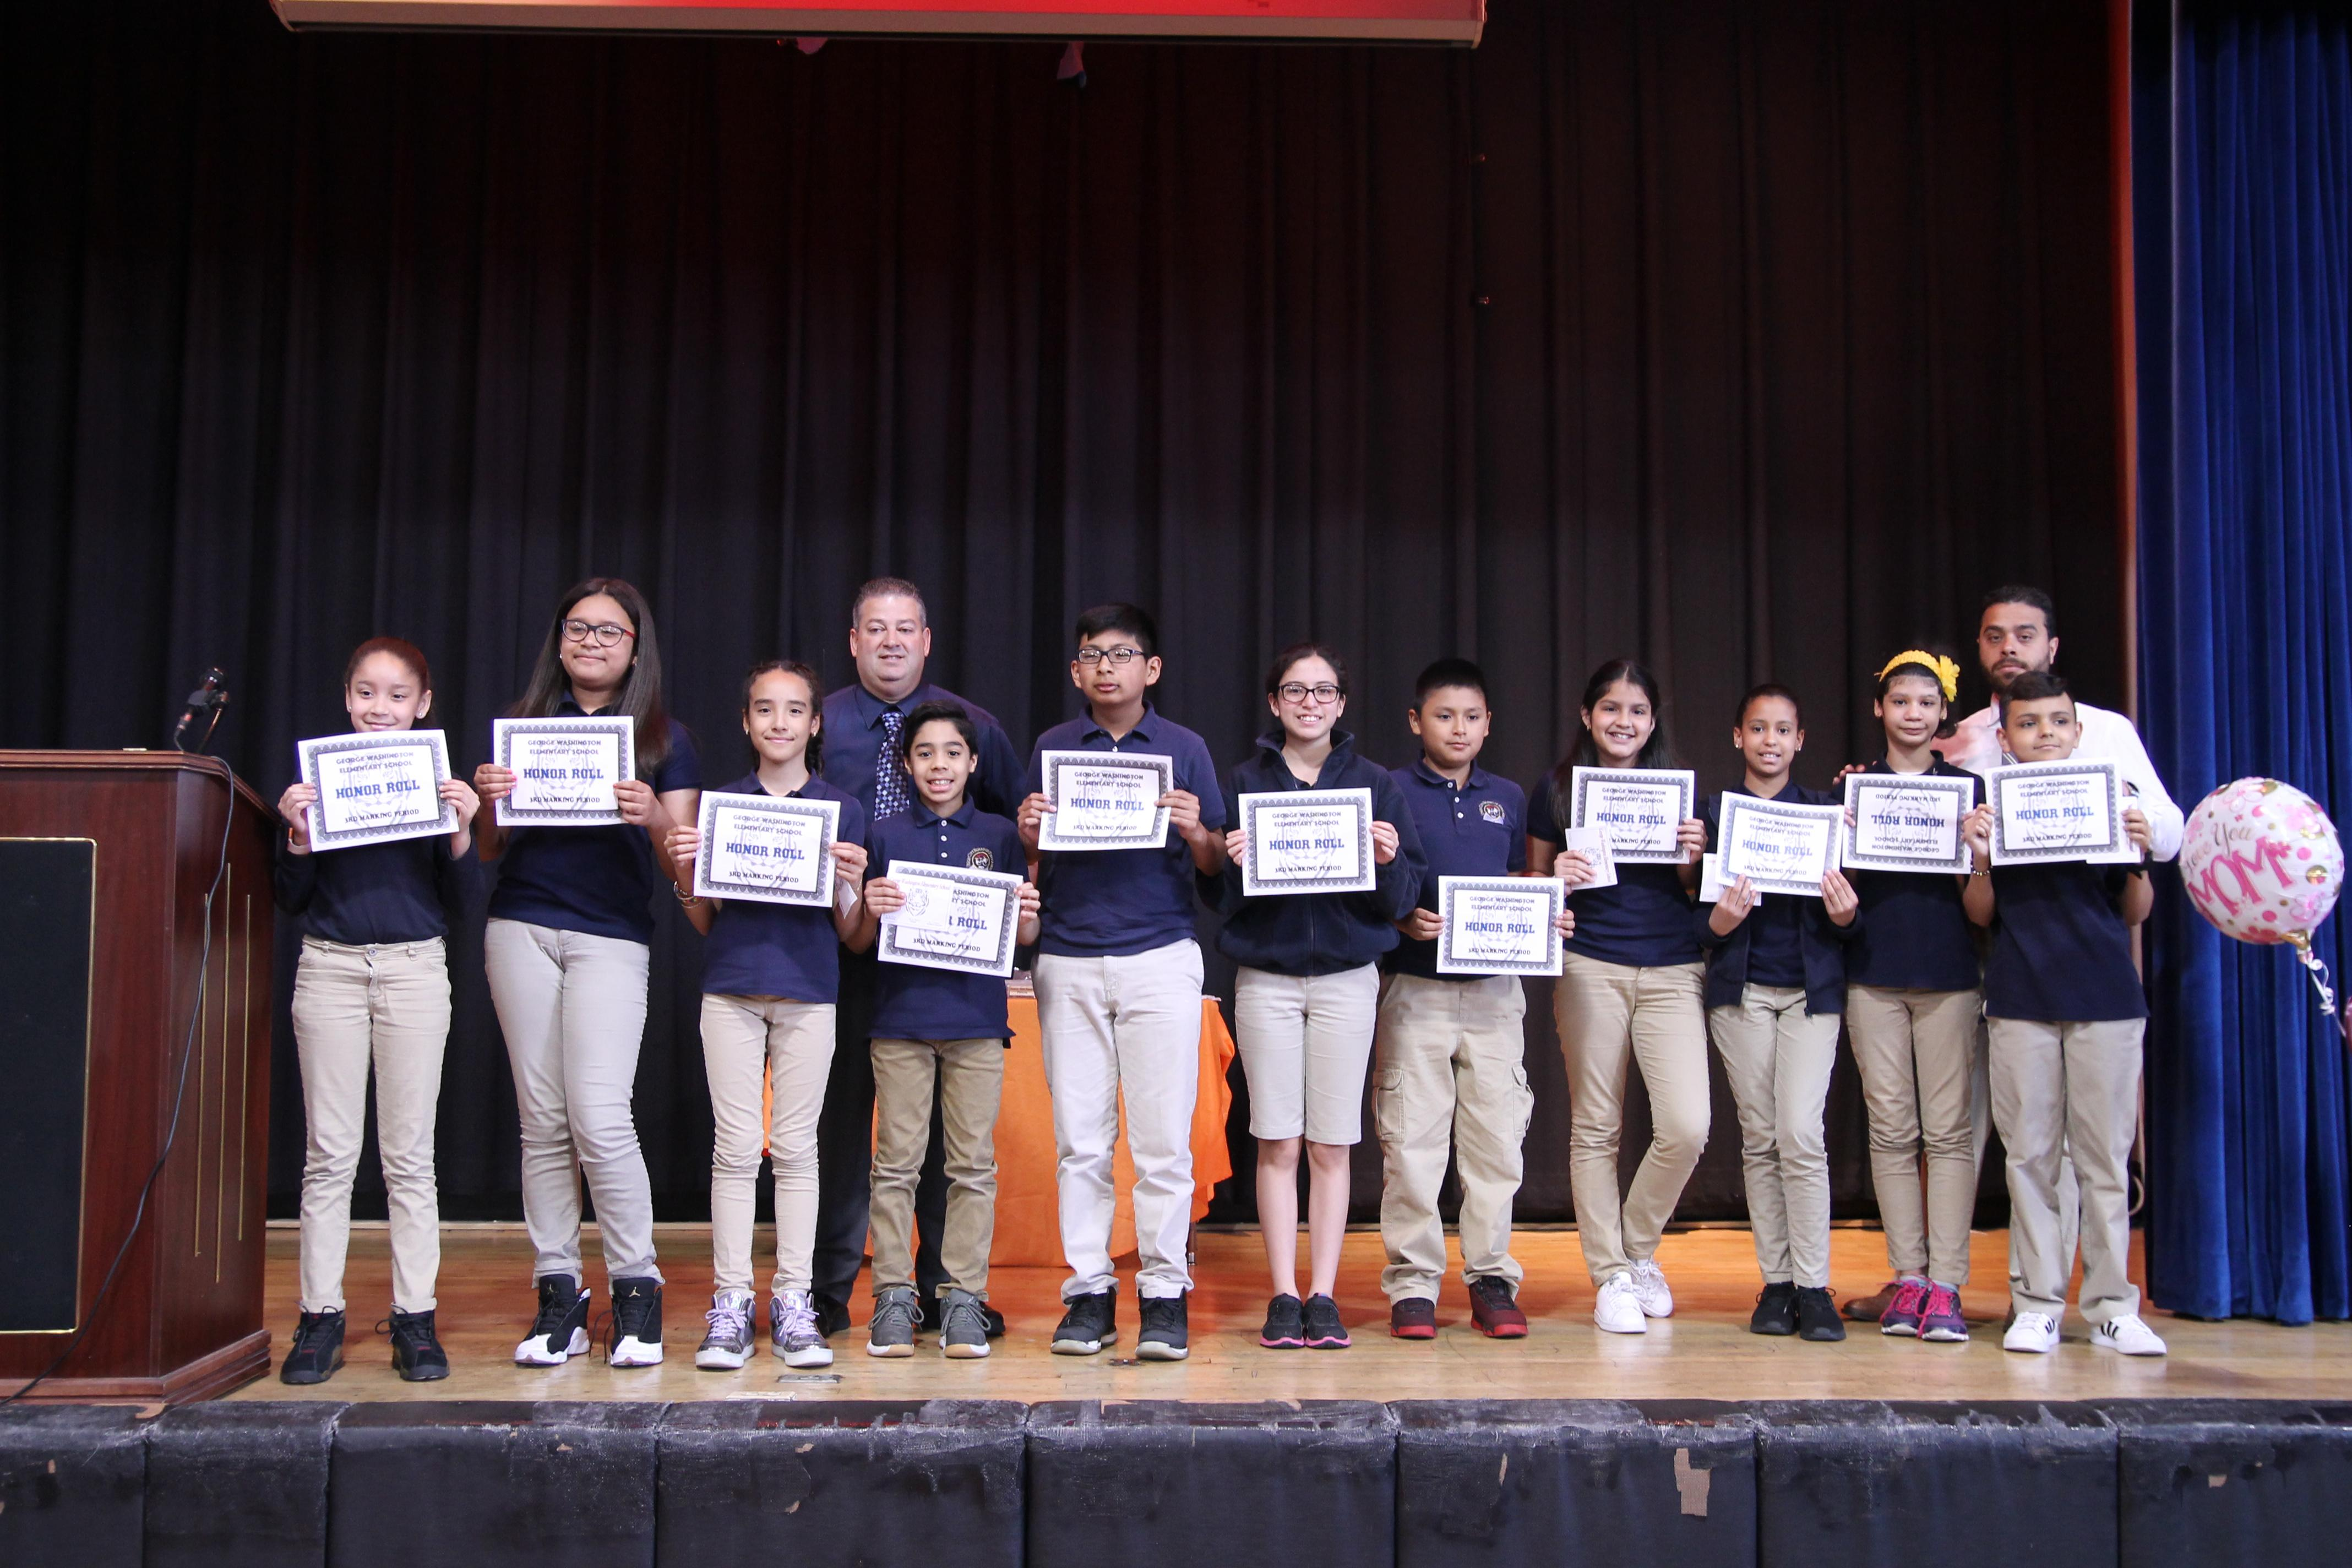 4th grade honor roll students